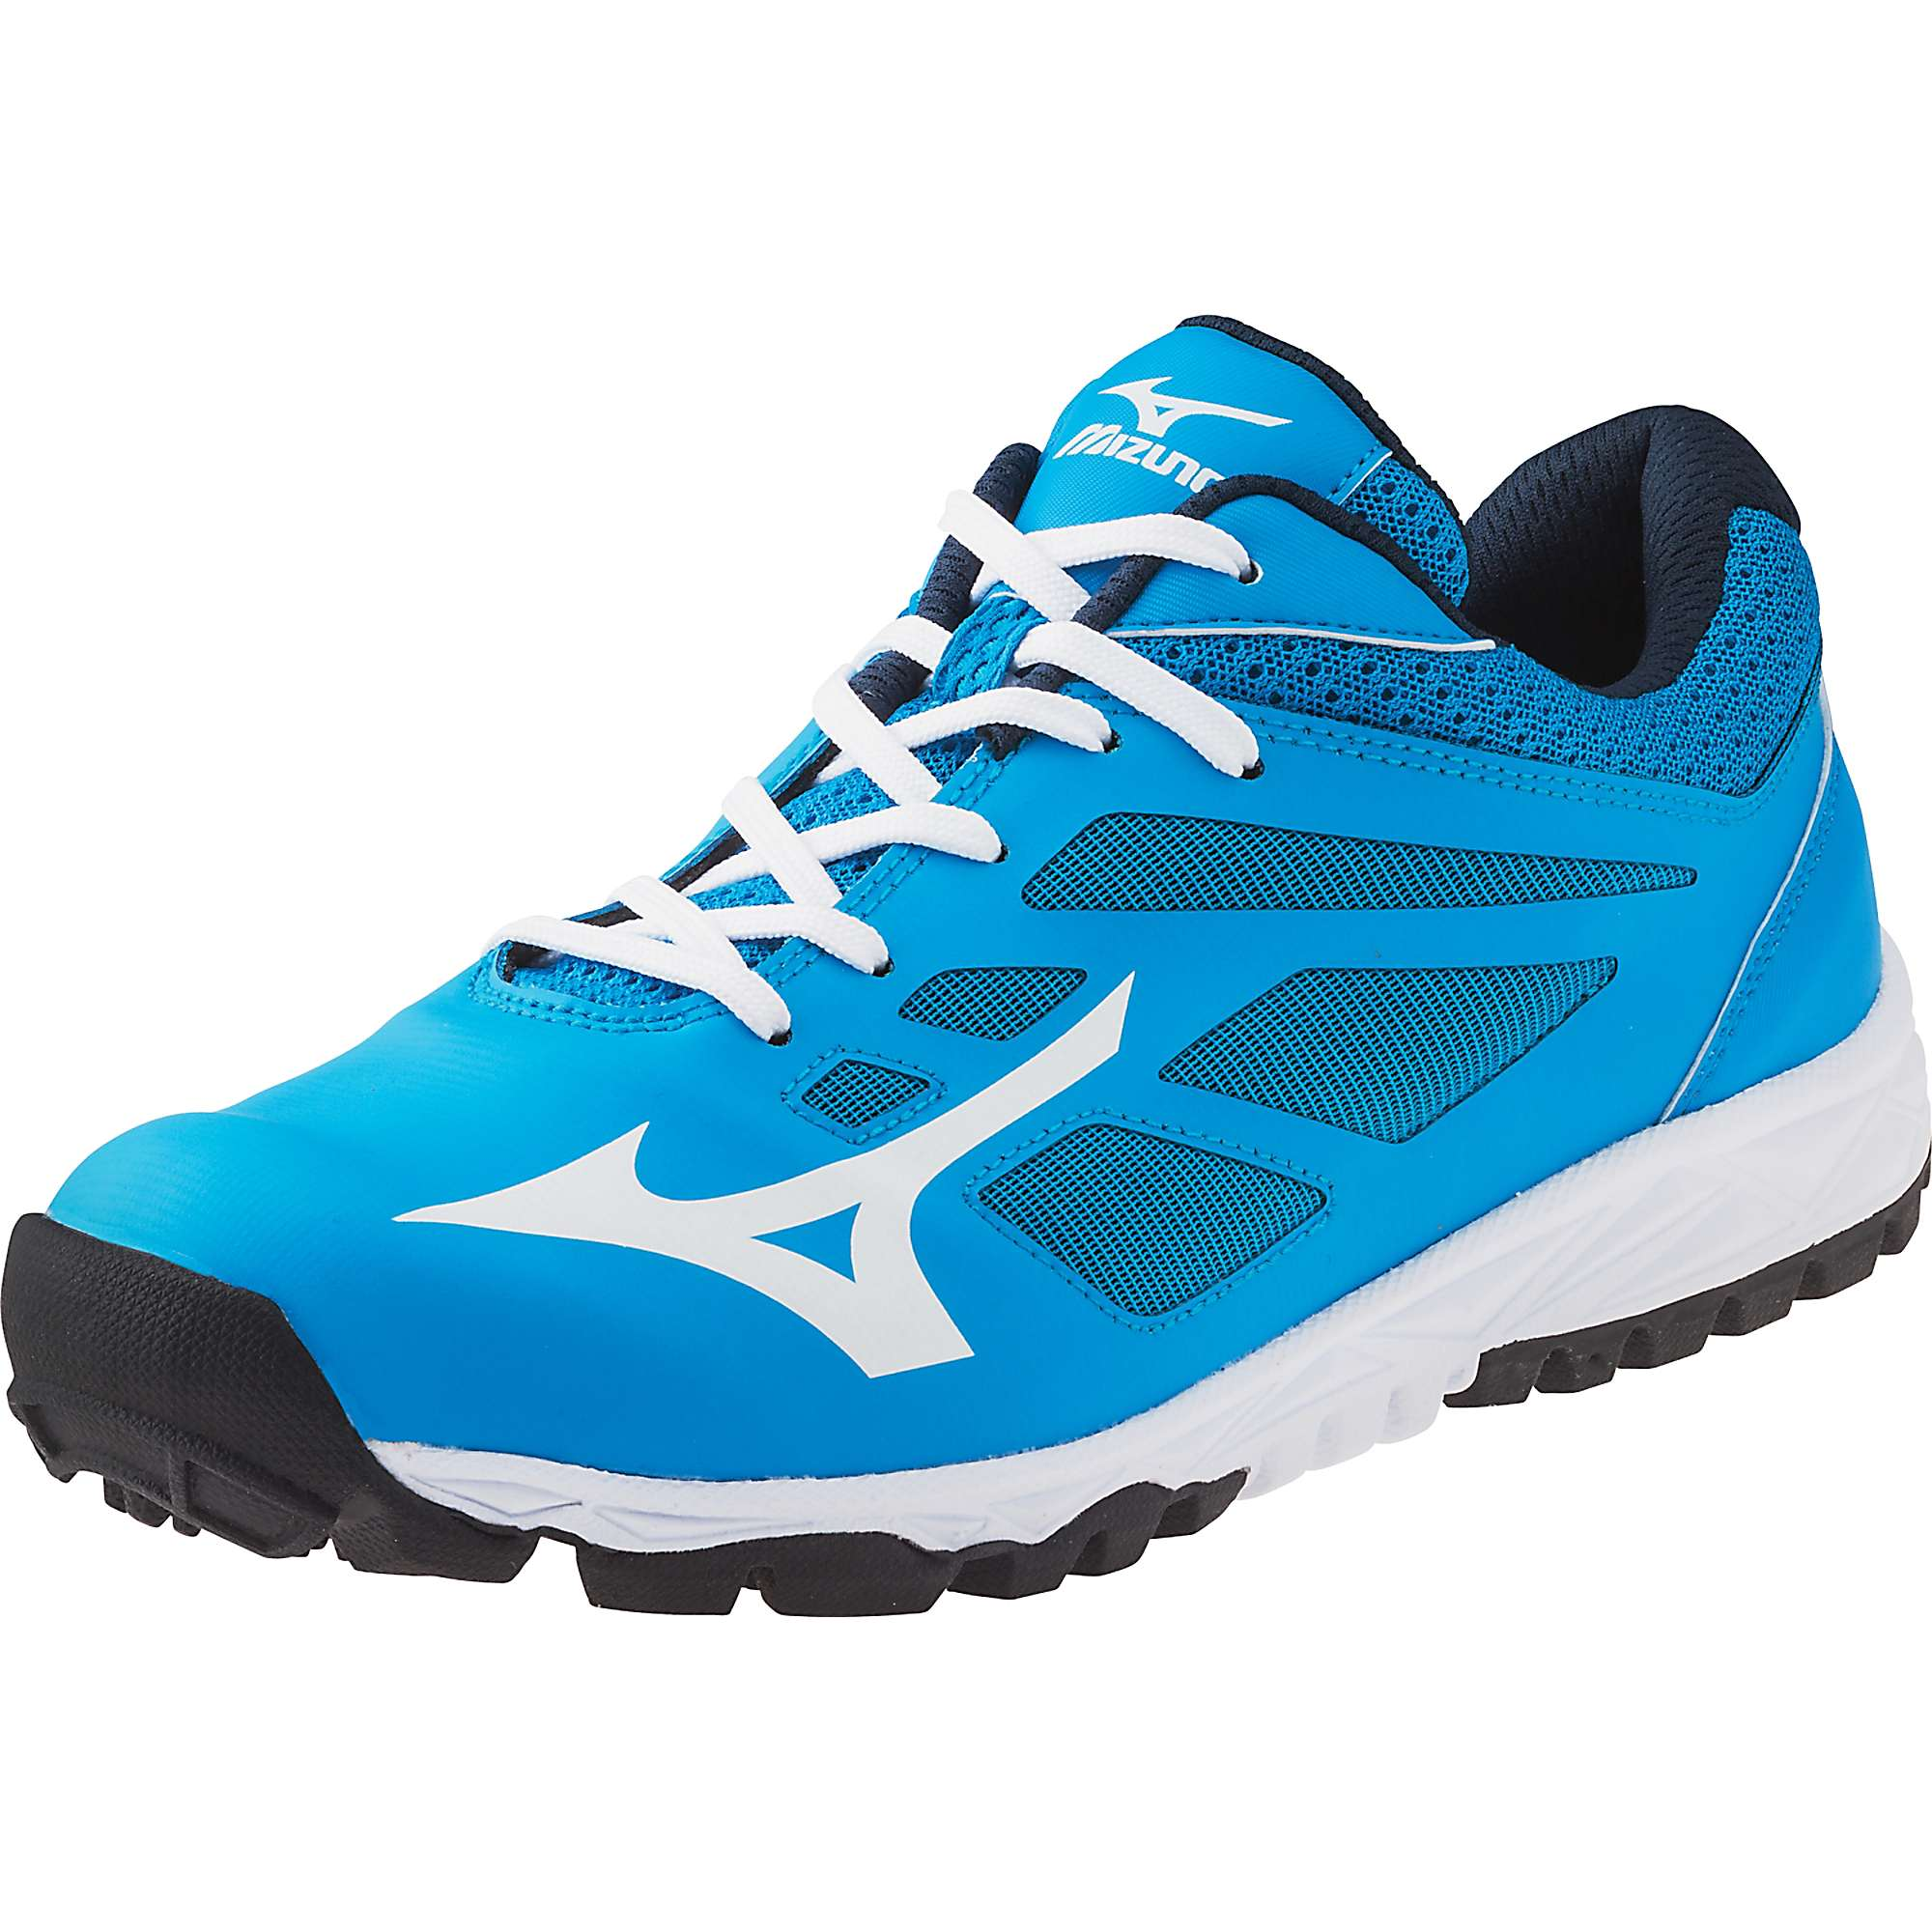 Mizuno Speed Trainer  Turf Shoe